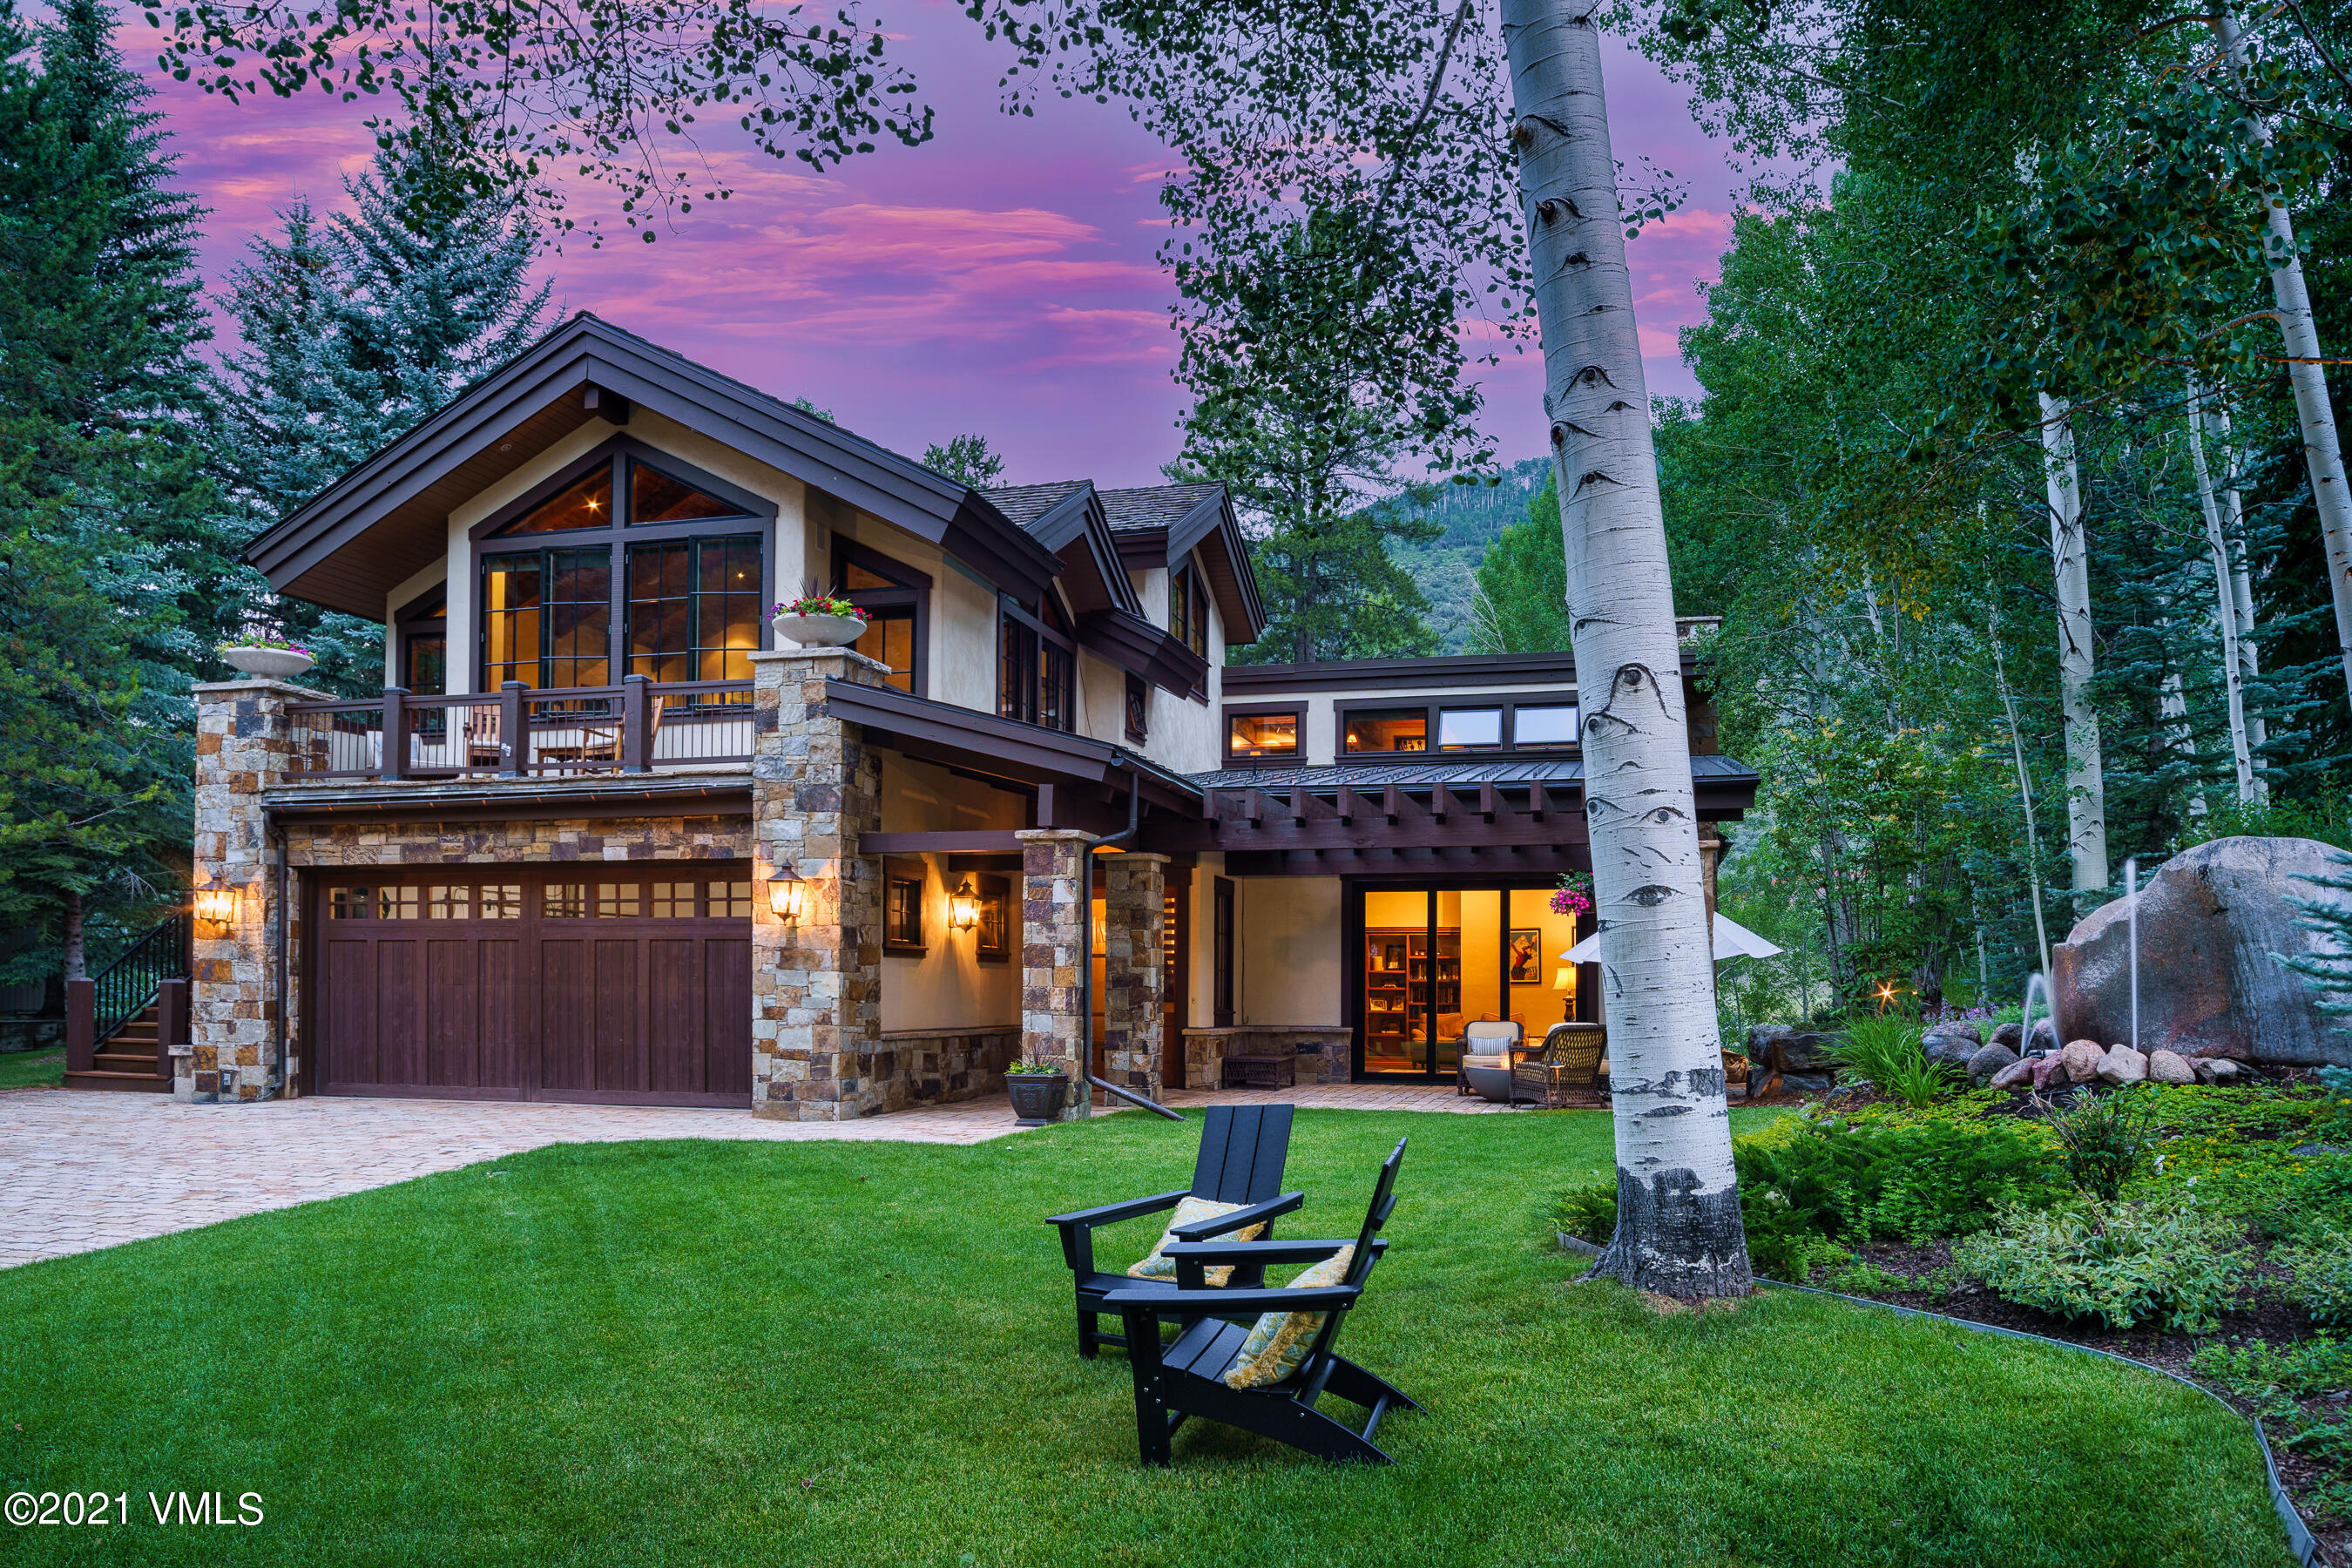 Located in the coveted Vail Golf Course Neighborhood and nestled among mature aspen and pine trees, 1163 Cabin Circle is a distinctive home revealing both quality craftsmanship and elegant aesthetics. This expansive sanctuary was recently remodeled and features 5 ensuite bedrooms, a newly renovated chef's kitchen, billiard room, library, gym, office, and bonus room. Built as an open concept, the communal spaces effortlessly flow into one another, allowing for easy living. Indoor-outdoor spaces including a pergola covered patio, living room with fireplace, several decks, and a hot tub make this home ideal for entertaining guests in every season. The heated driveway makes snow removal a breeze!This pristine and private mountain retreat boasts expansive mountain, neighborhood, and golf course views. Situated on a quiet street with close proximity to the best that Vail has to offer, it is a short walk or bike ride to Vail Village, the lifts, Ford Amphitheater, and more.